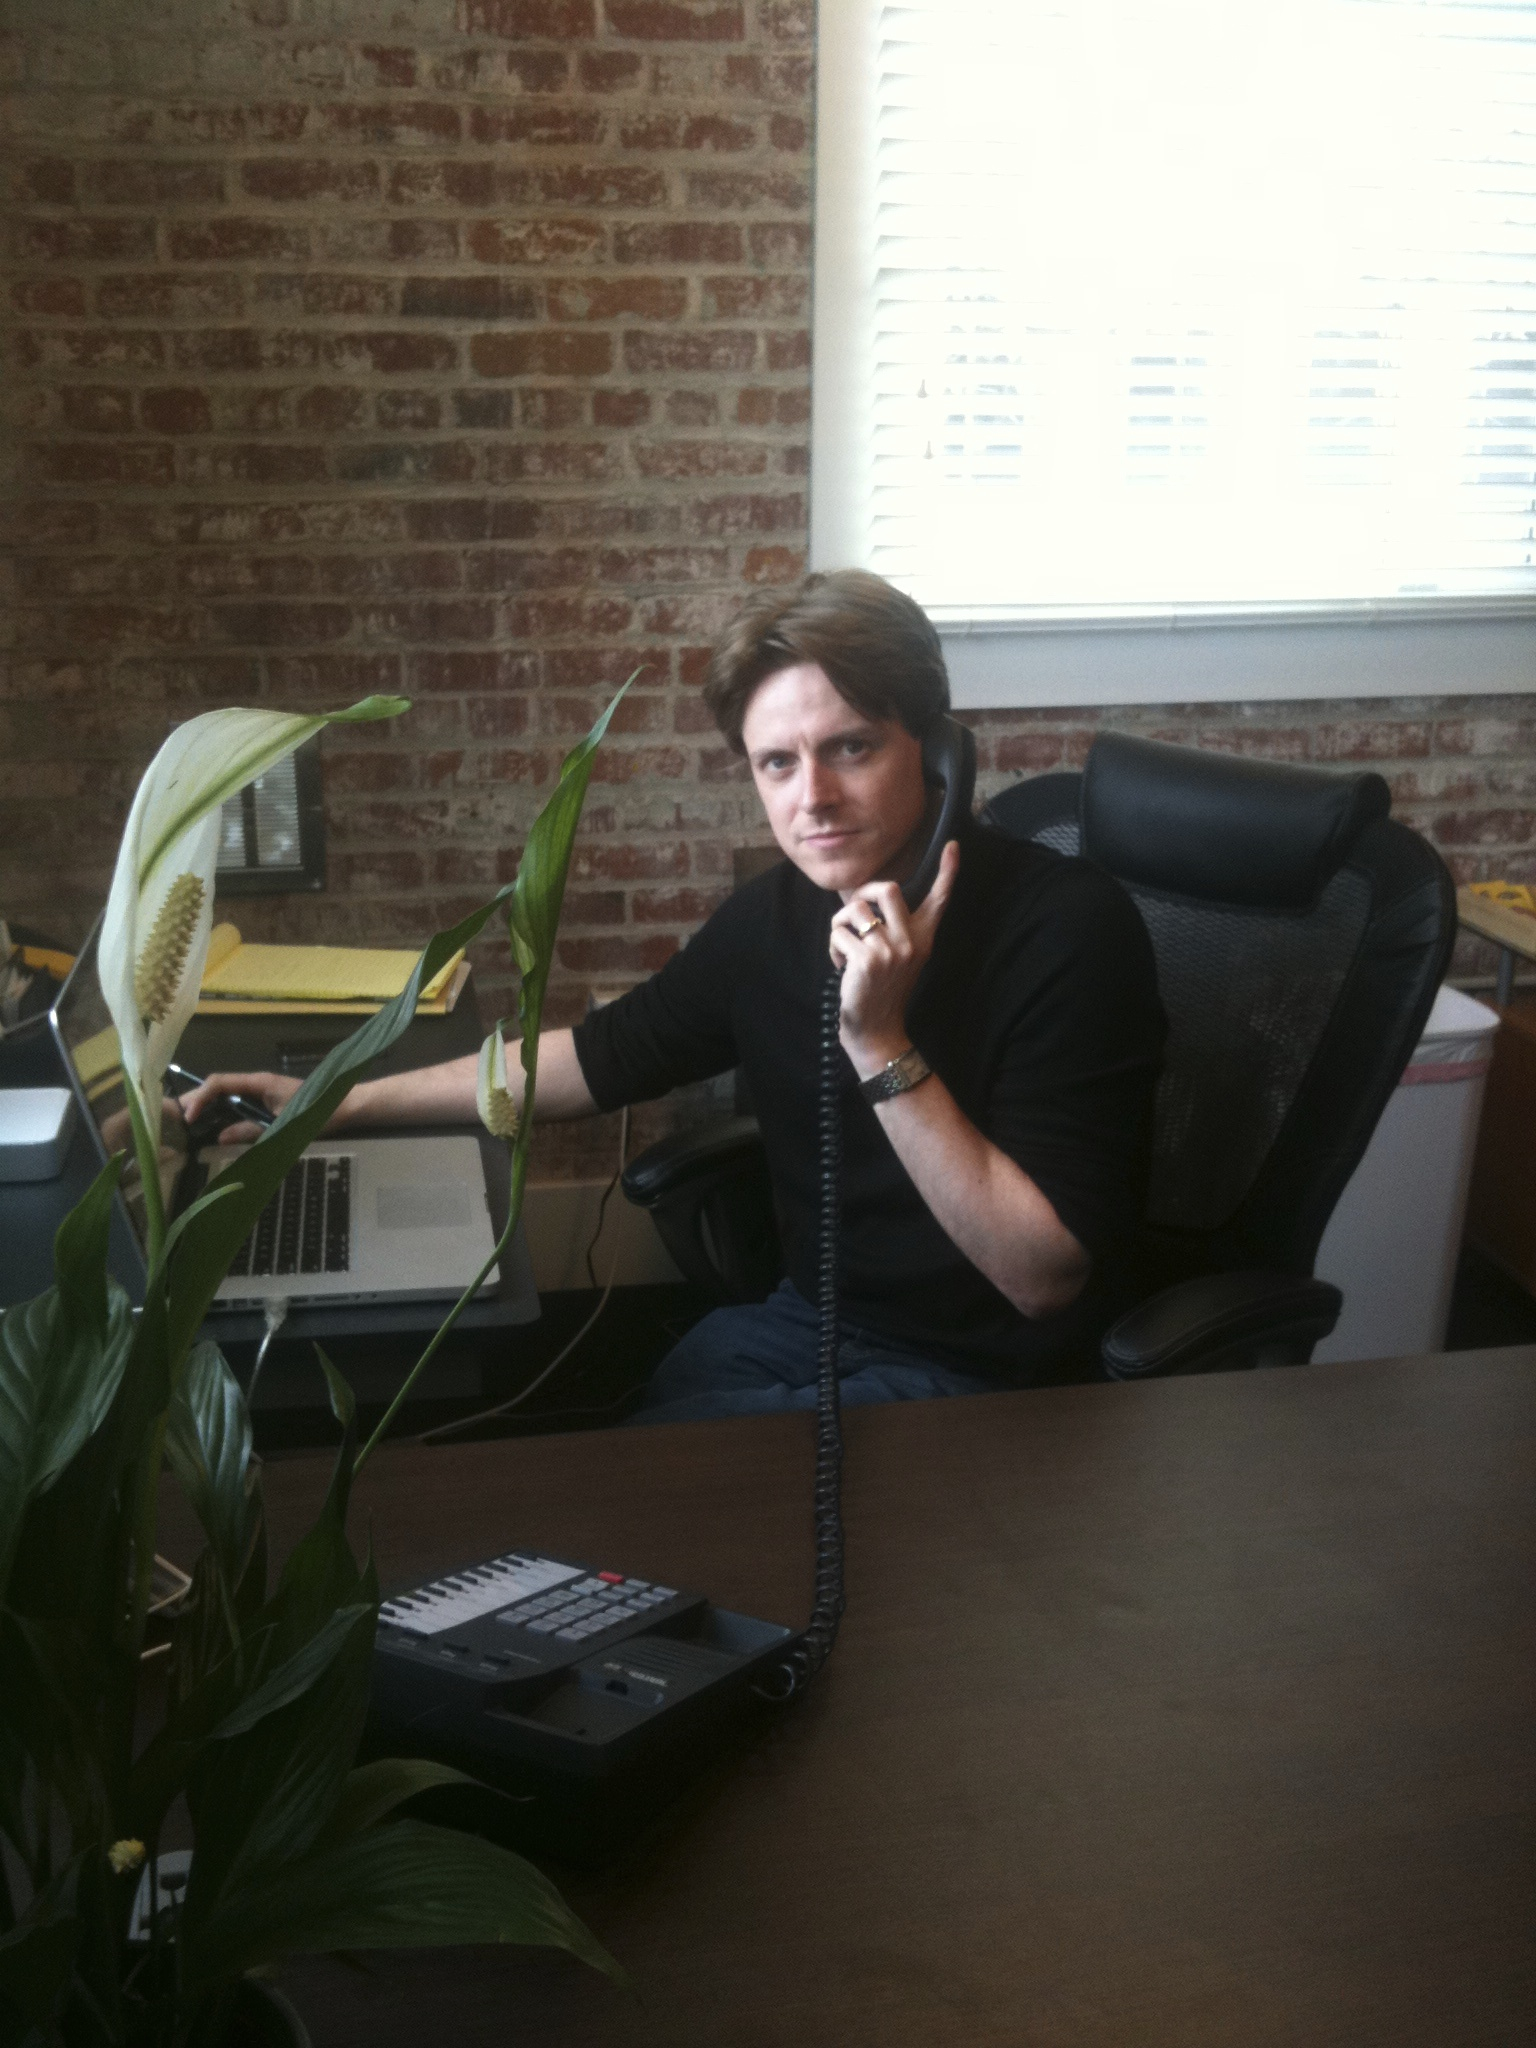 James Taylor in office